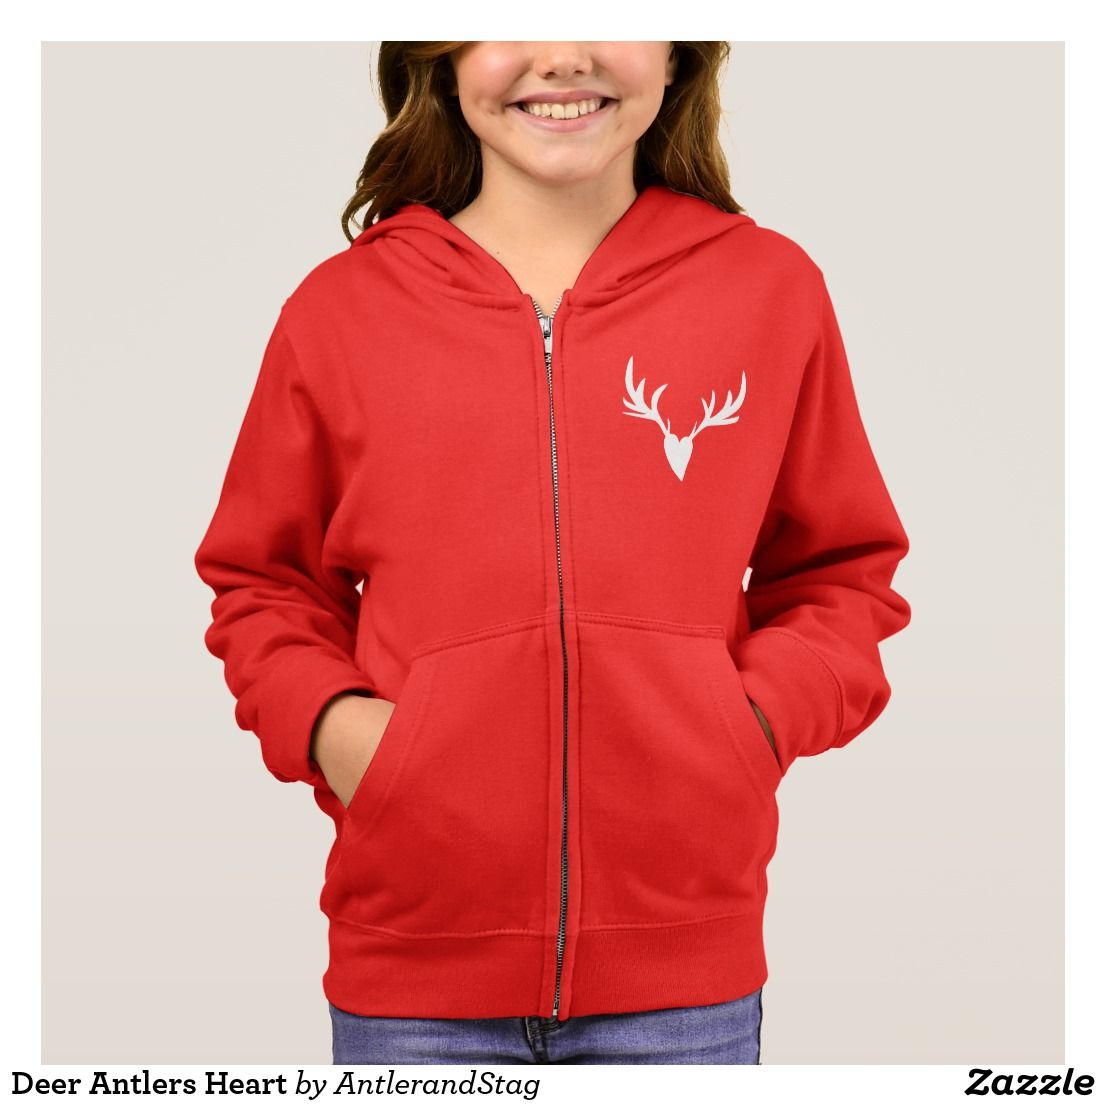 Girls hunting style zip up pullover hoodie featuring antler heart